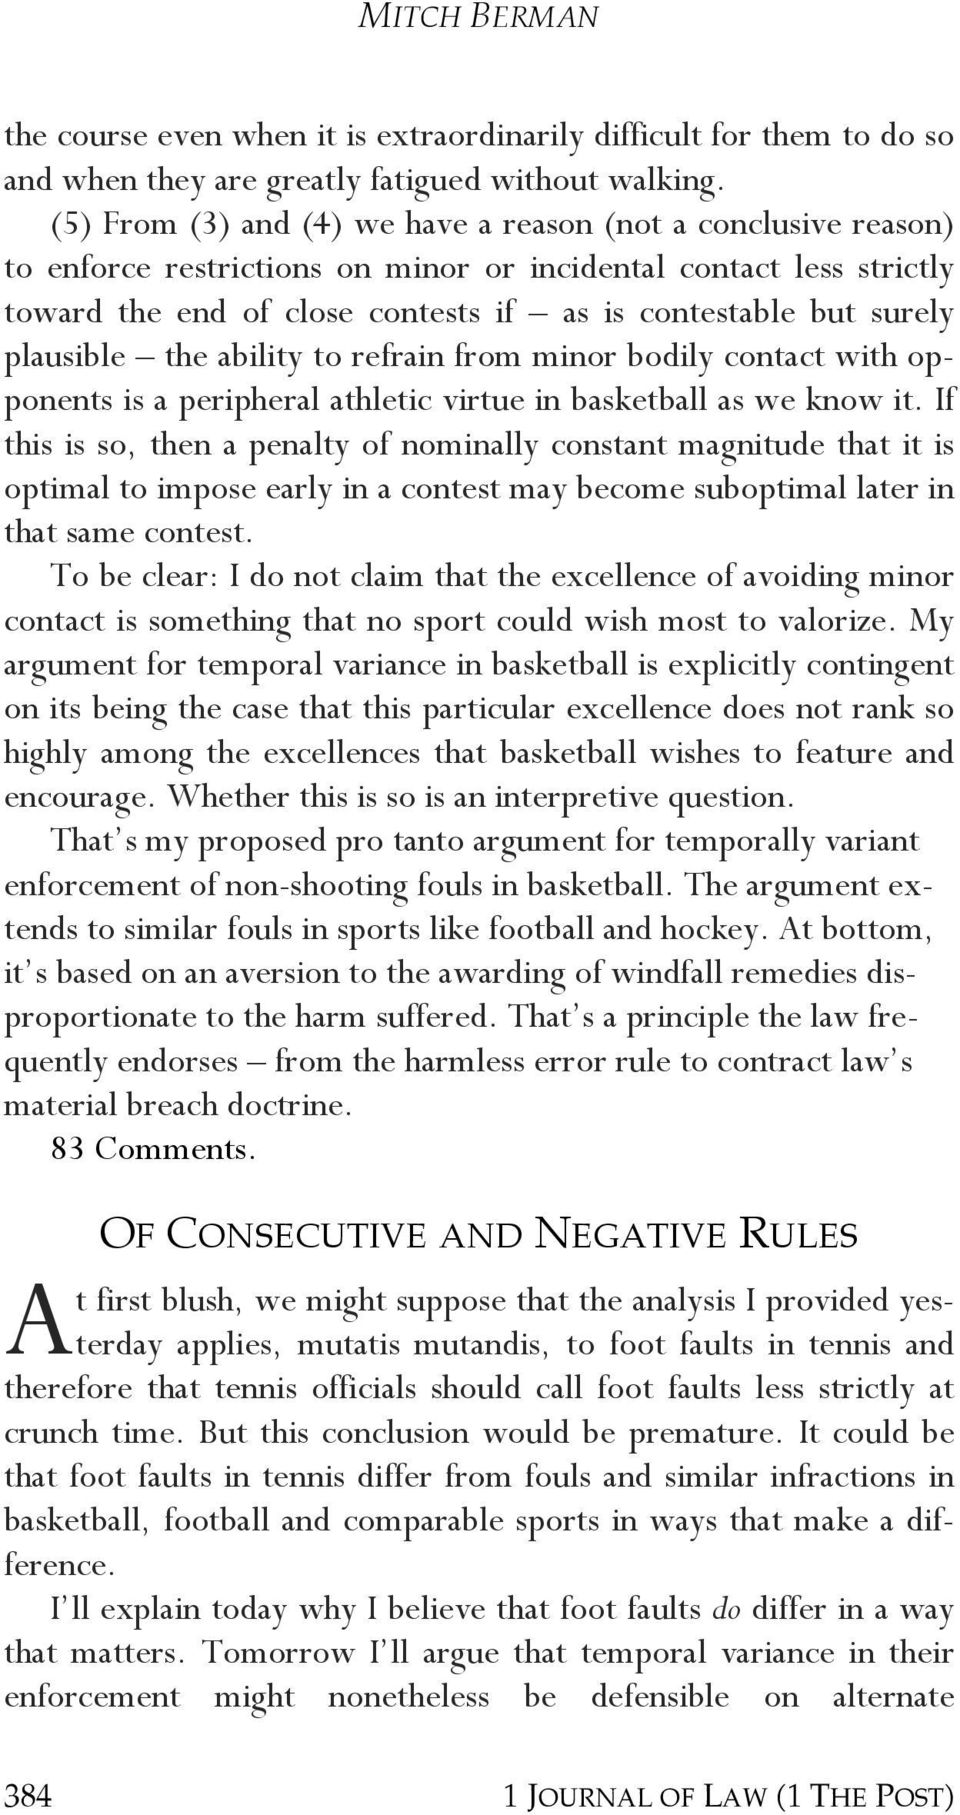 plausible the ability to refrain from minor bodily contact with opponents is a peripheral athletic virtue in basketball as we know it.